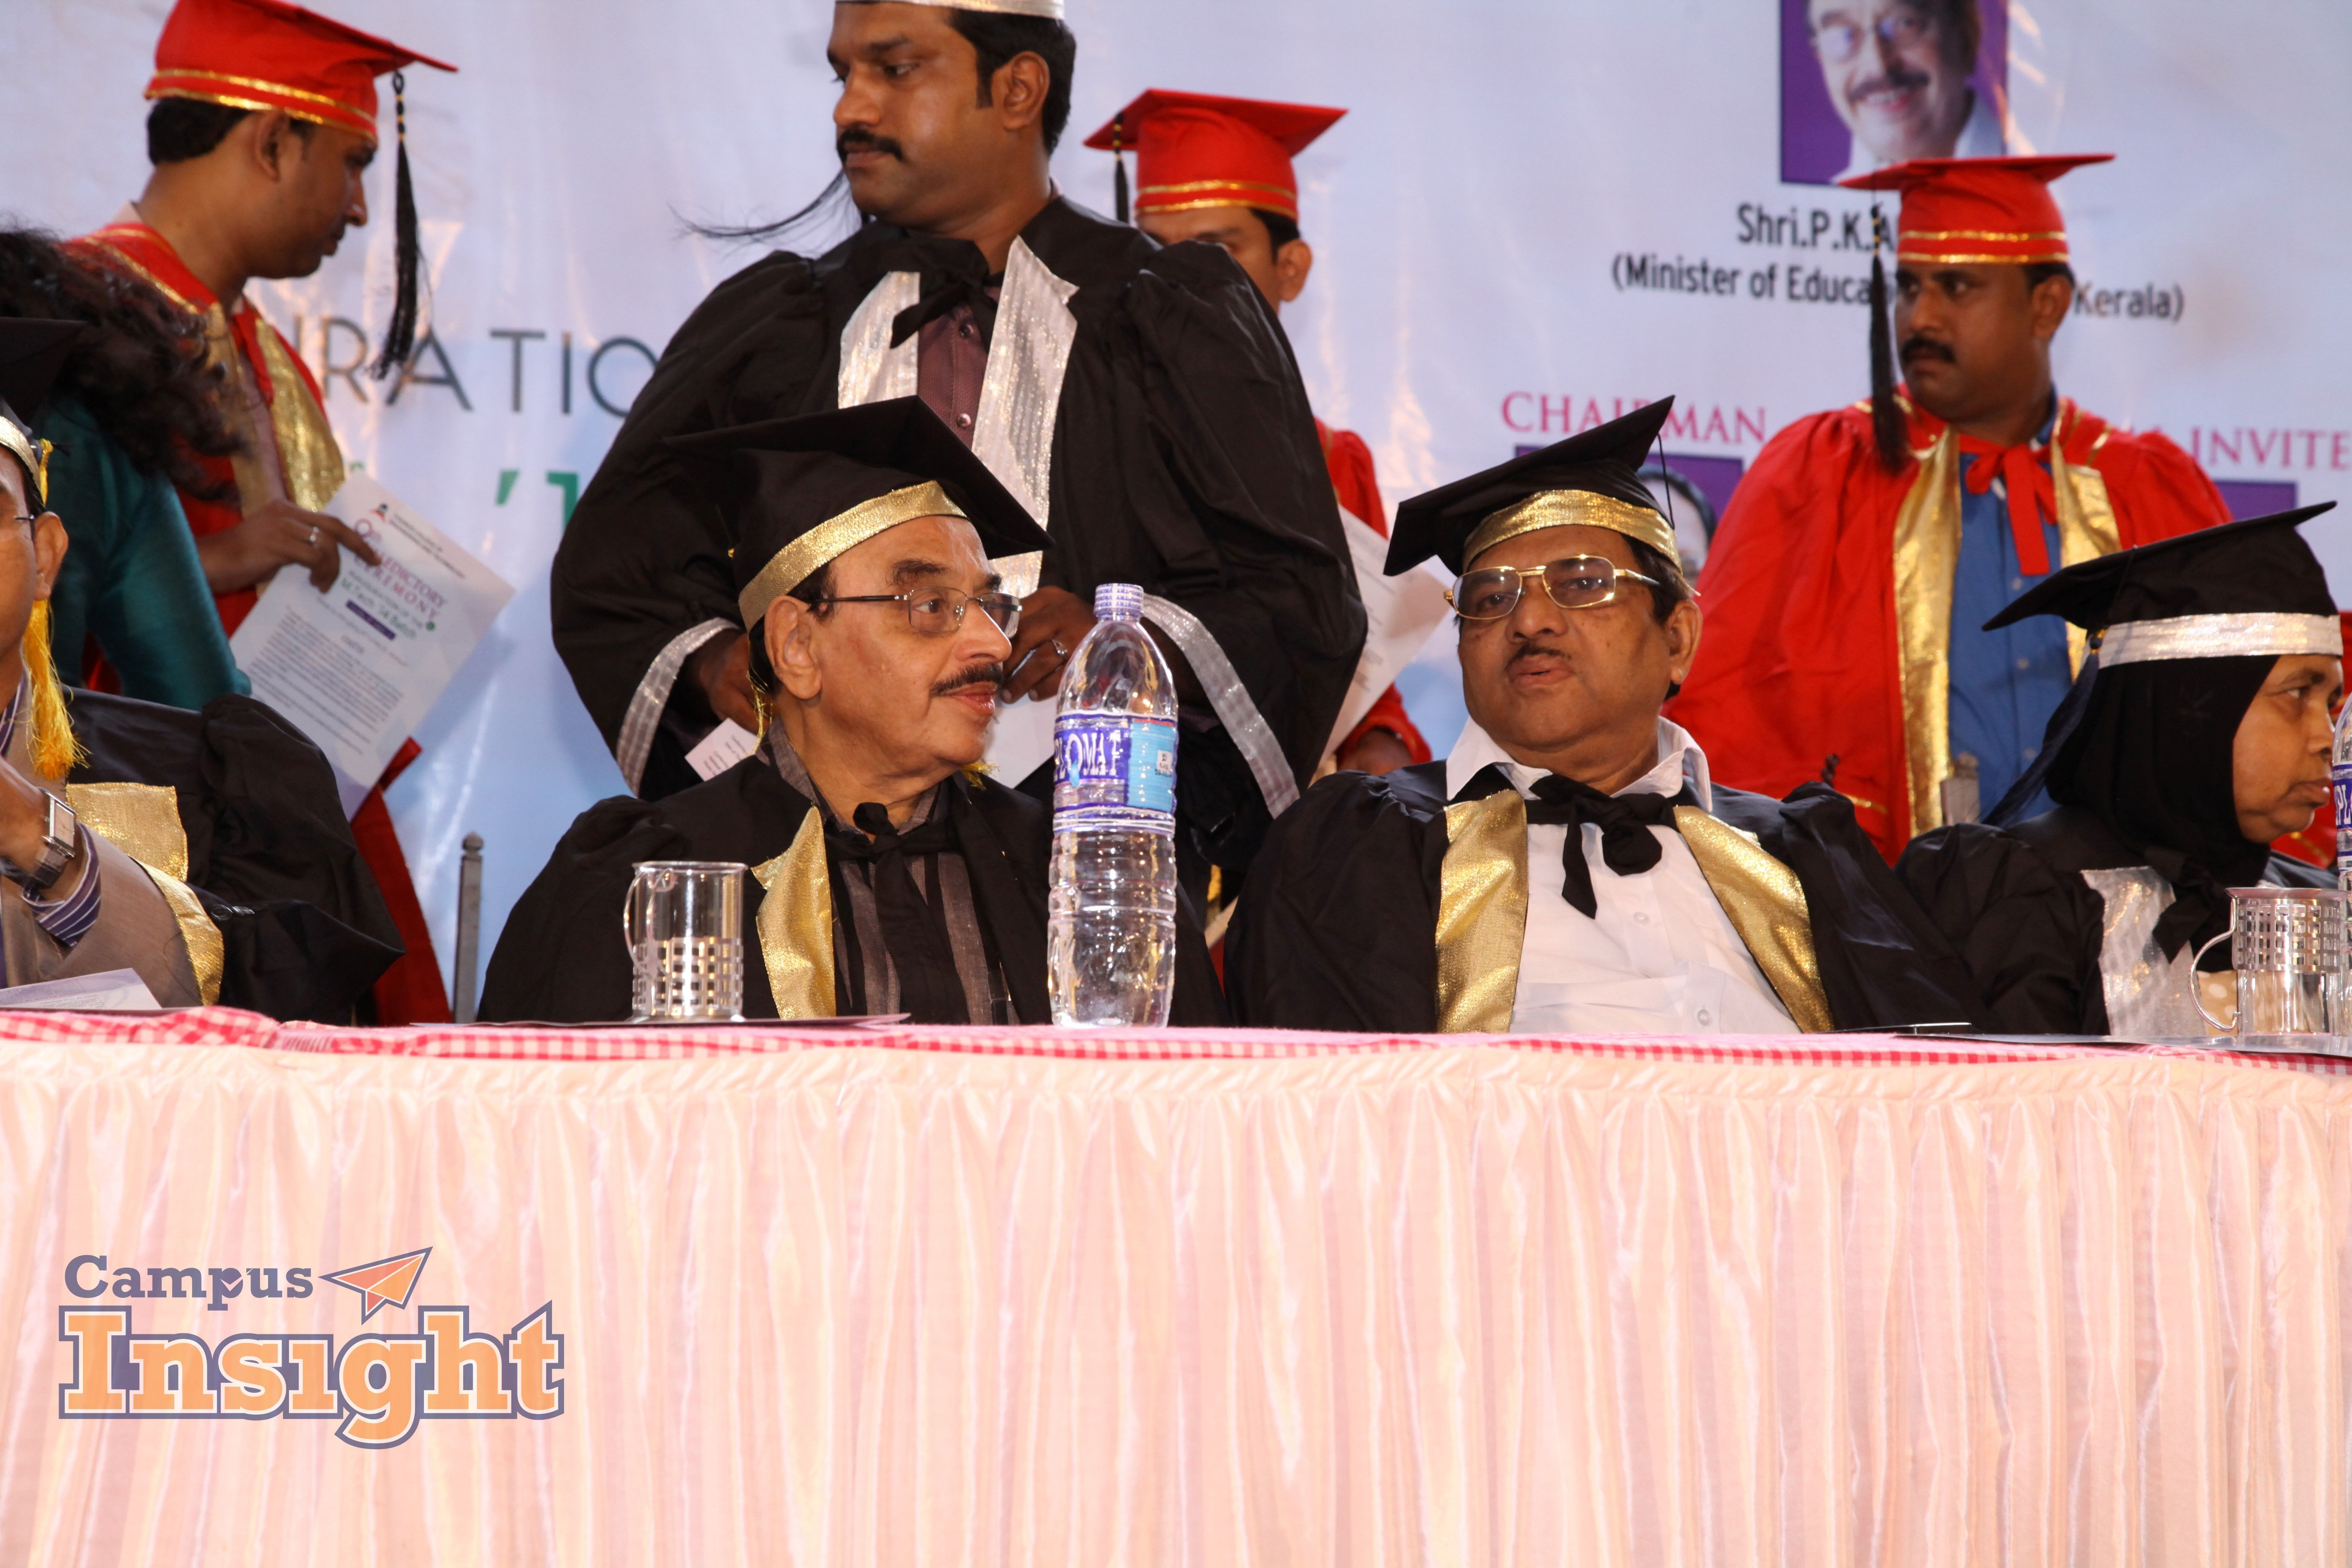 Chief Guest and Chairman Academic dress, Campus, Insight